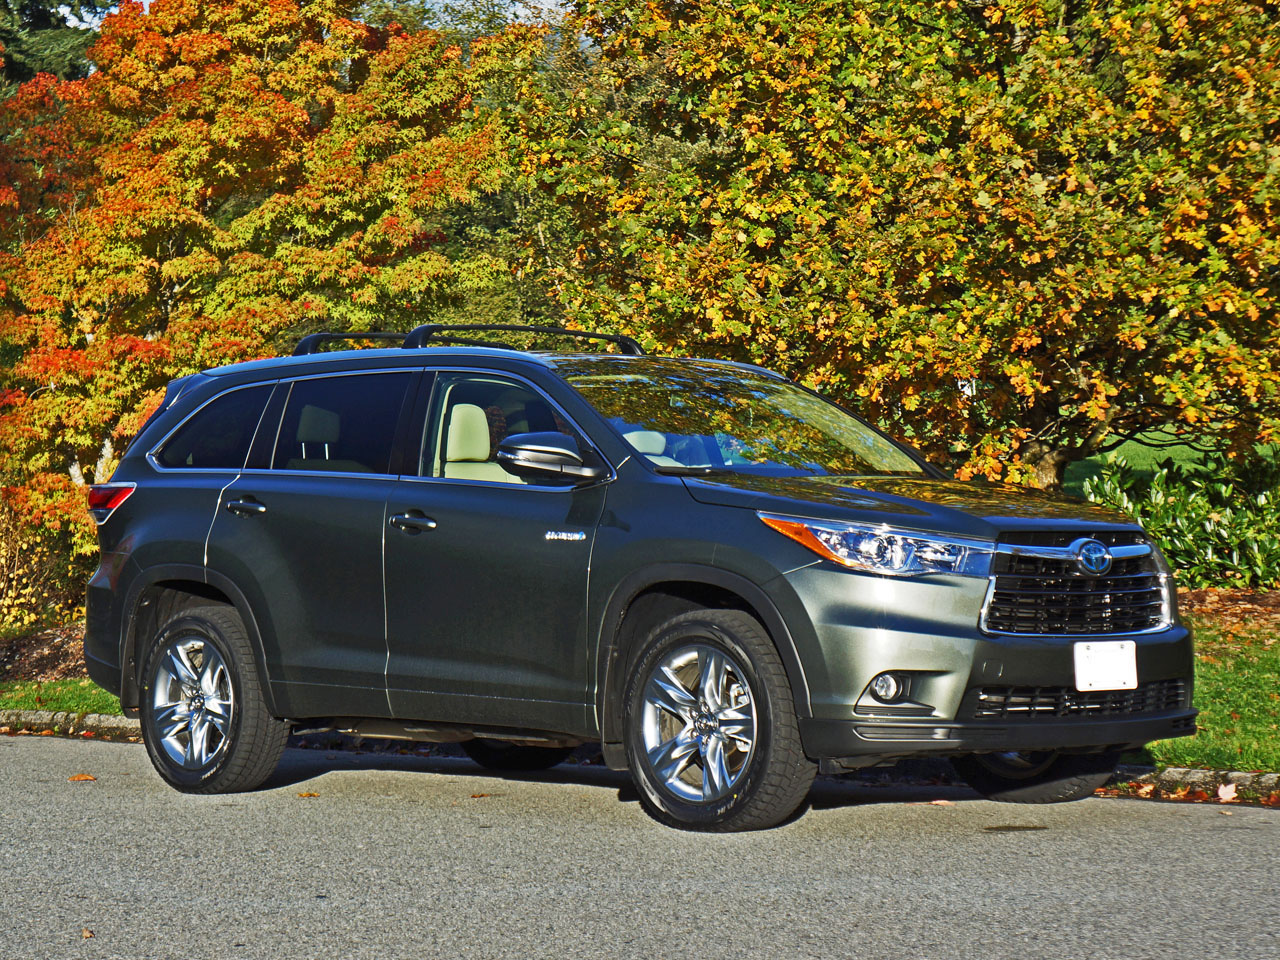 2015 toyota highlander hybrid limited road test review carcostcanada. Black Bedroom Furniture Sets. Home Design Ideas